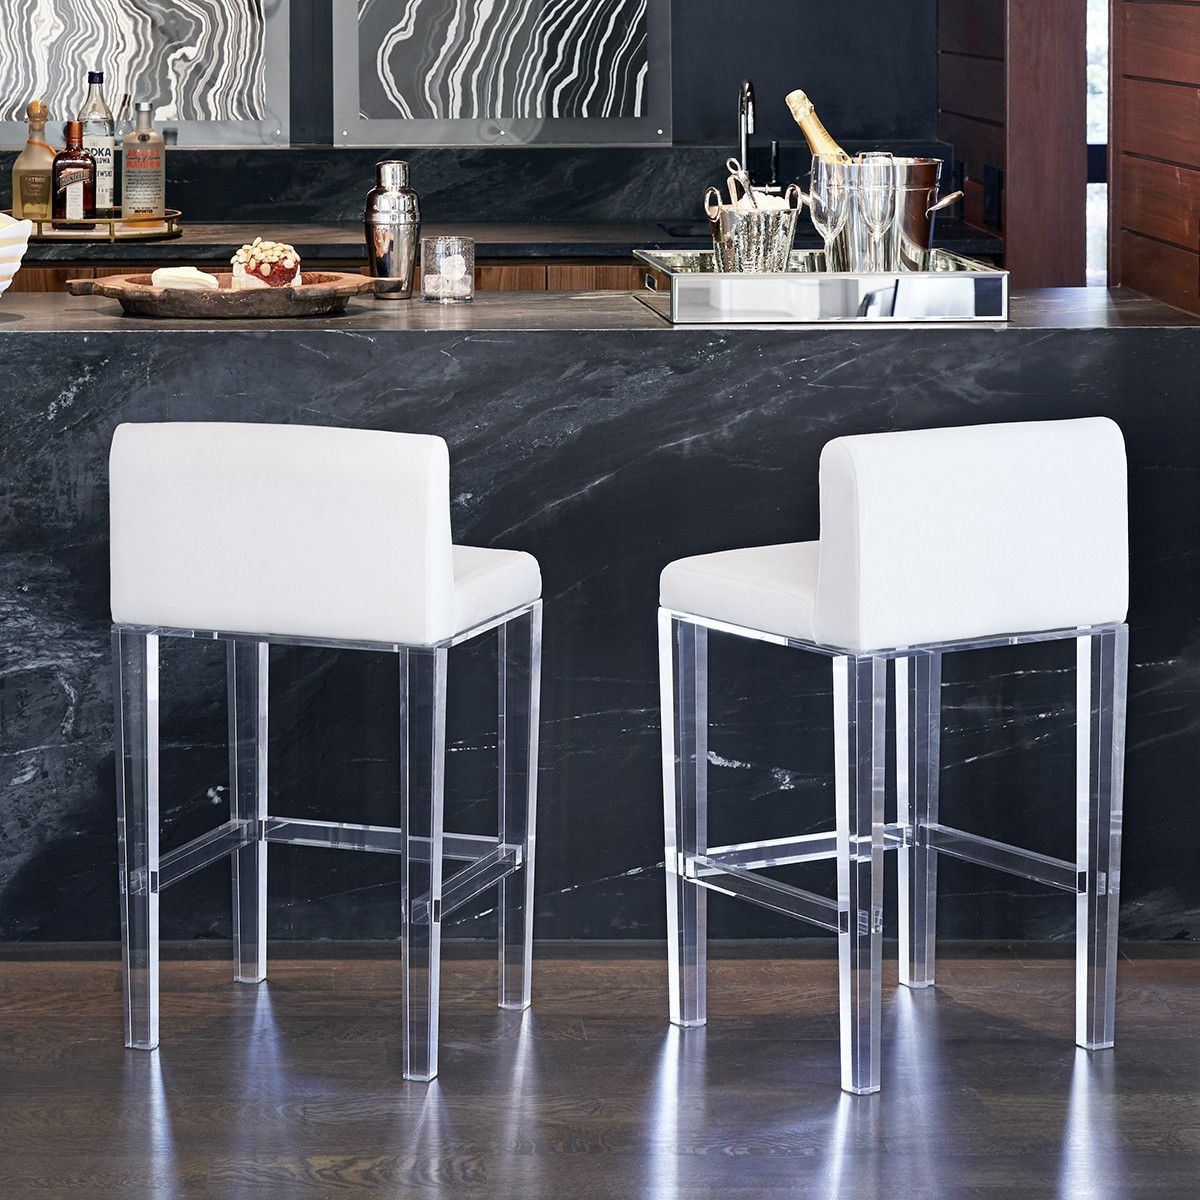 Pin By Cristiane Lucchese On Banqueta Modern Home Bar White Kitchen Bar Stools Contemporary Bar Stools